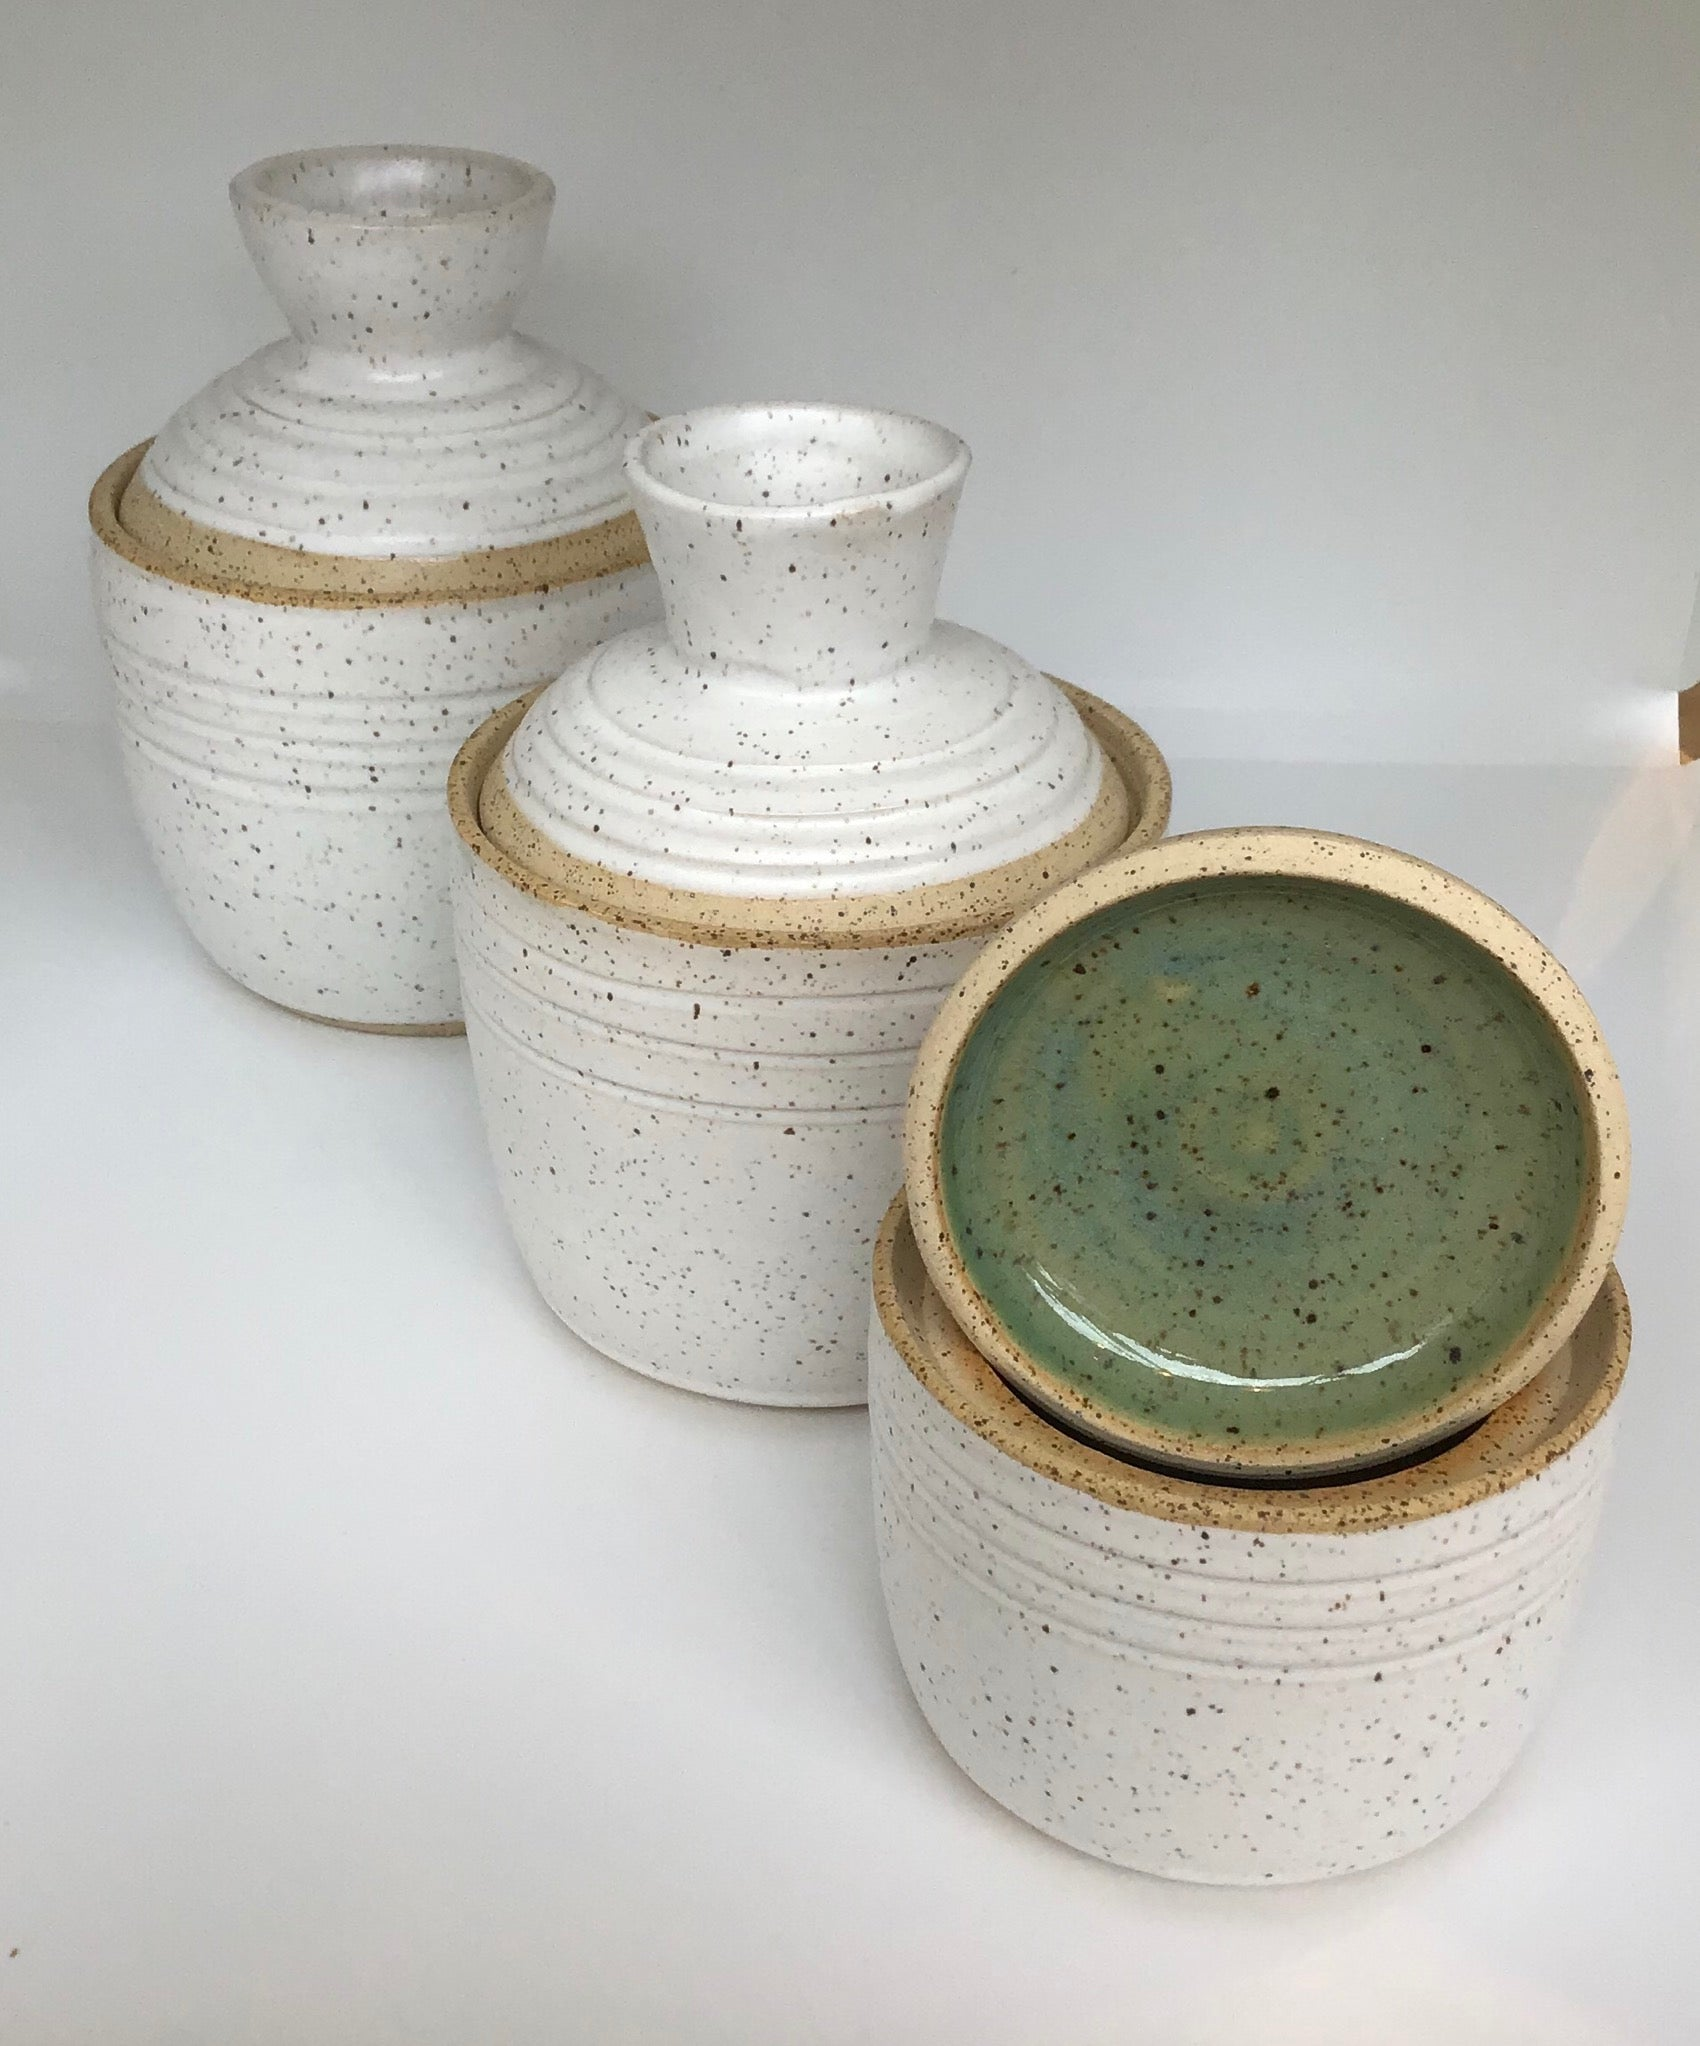 Lidded Pot - Medium